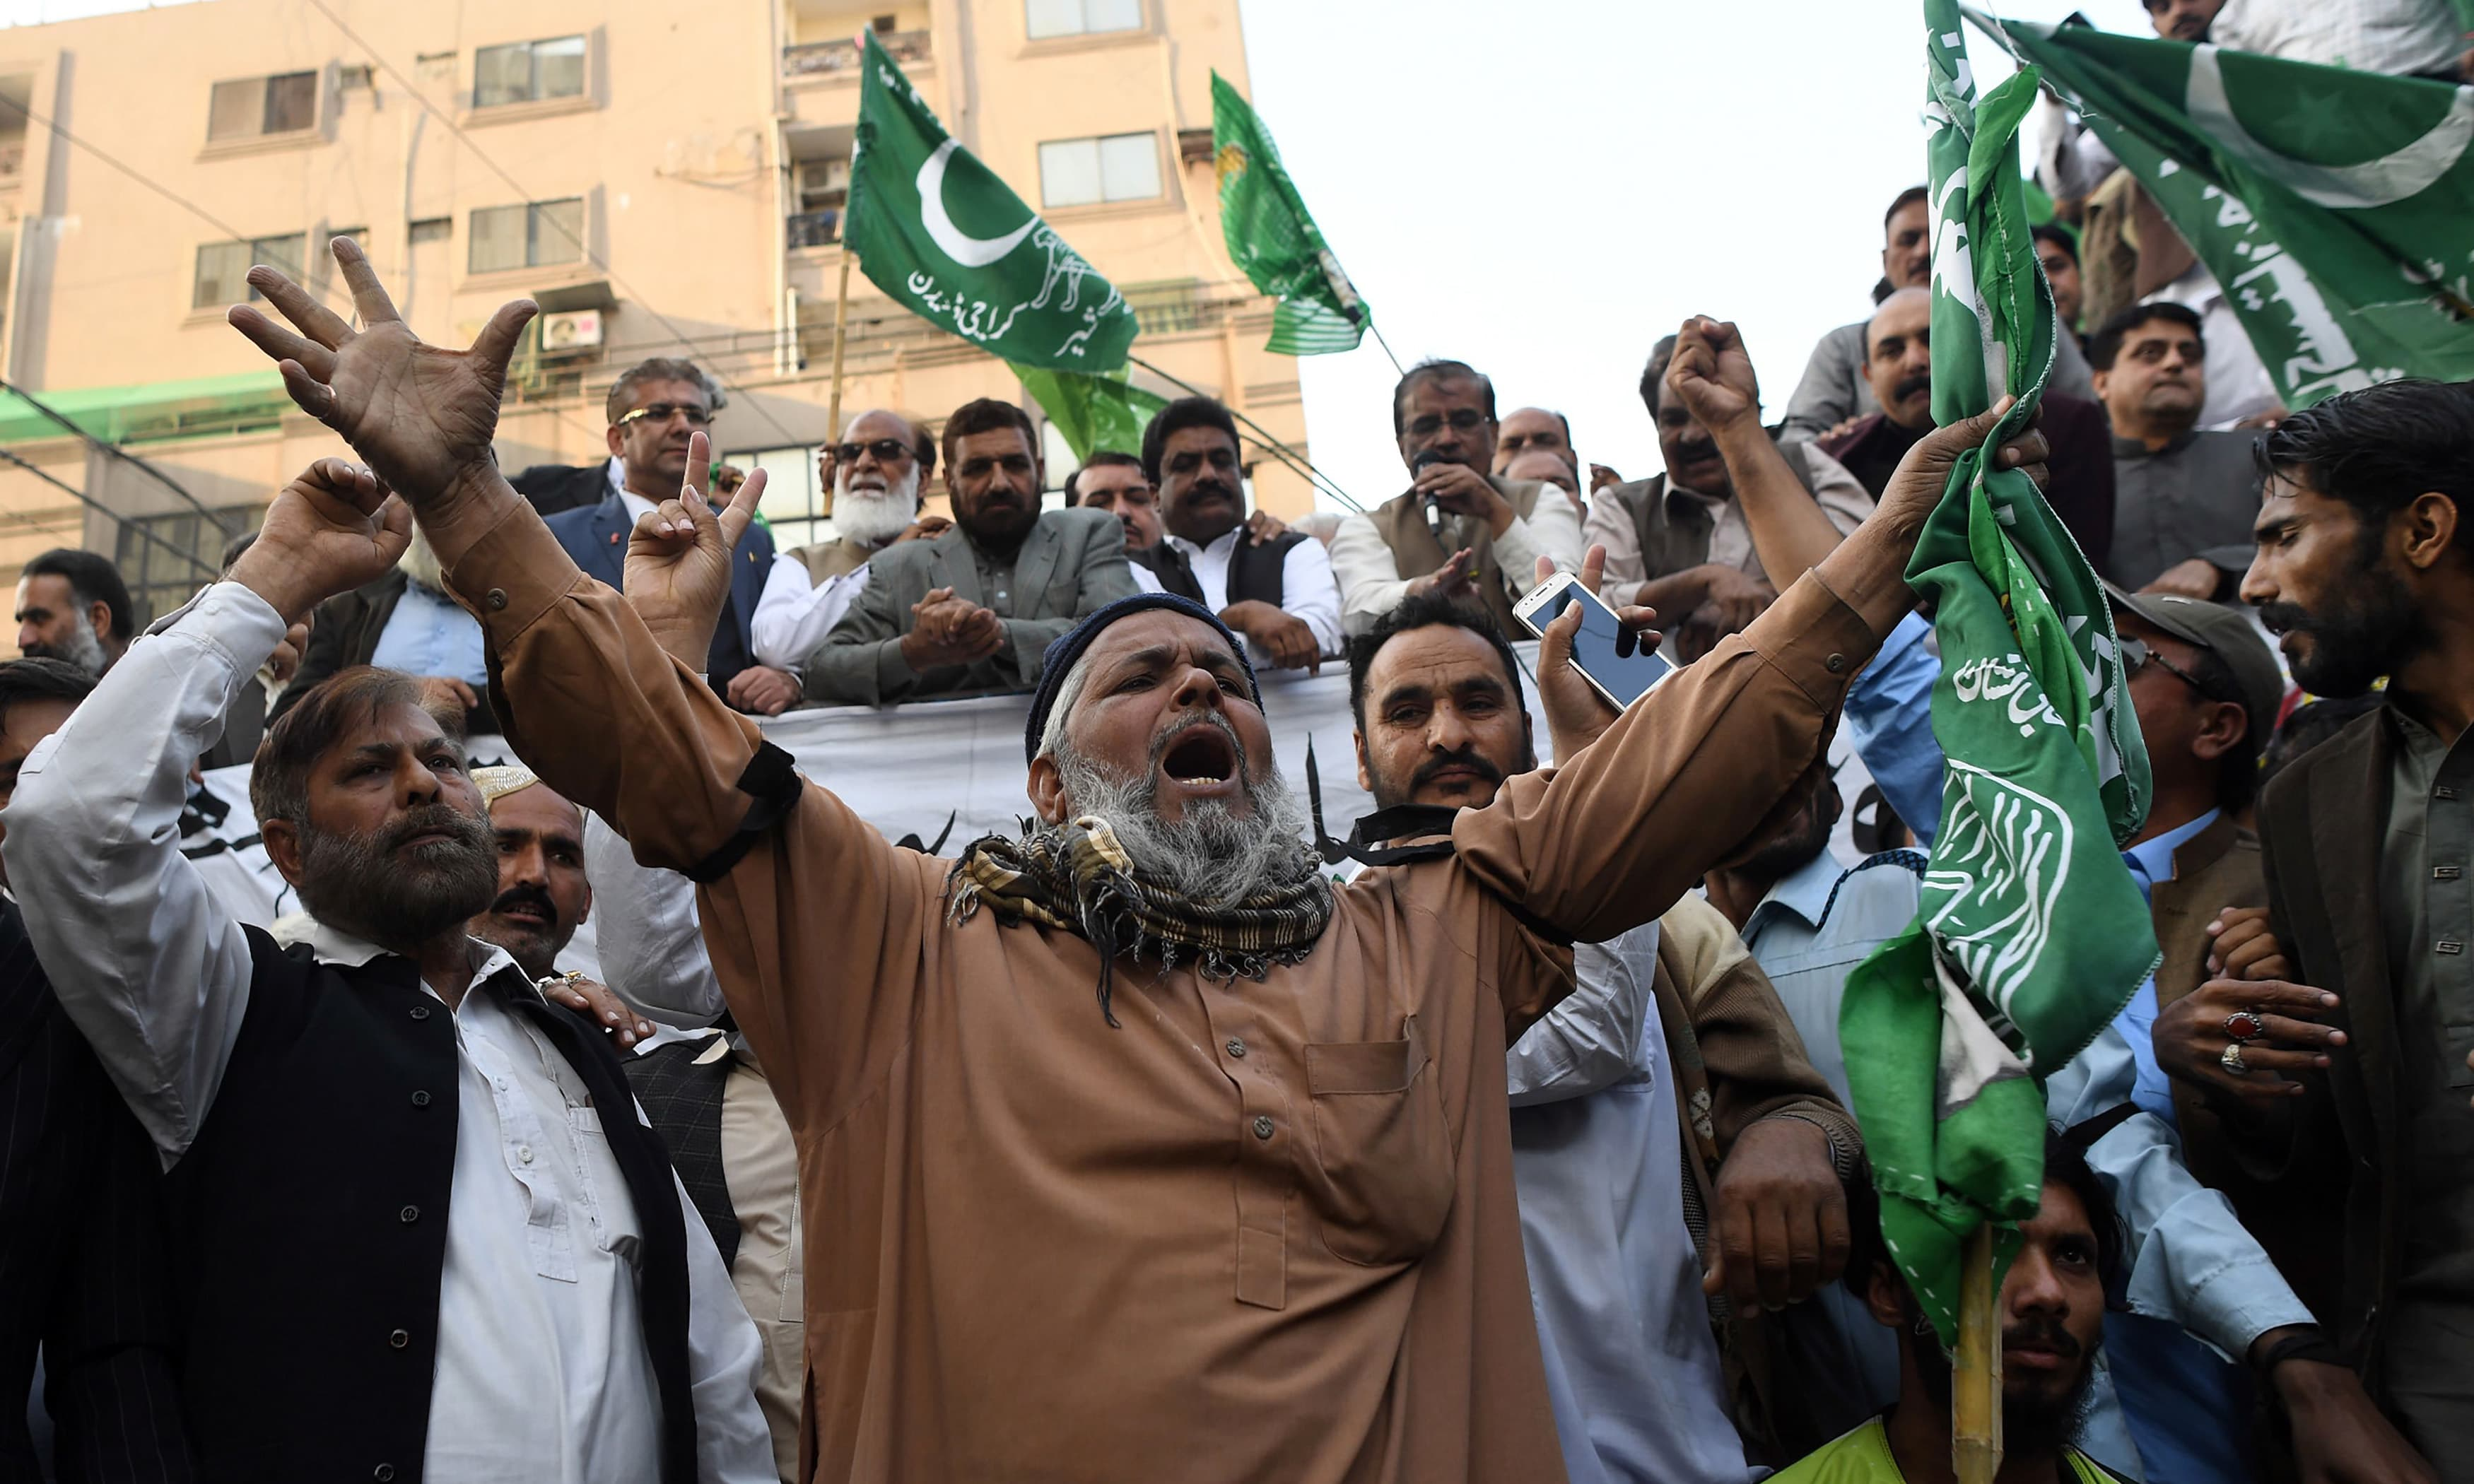 Supporters of former prime minister Nawaz Sharif gather outside the anti-corruption court in Islamabad ahead of the court verdict in the Al-Azizia and Flagship Investment cases. —AFP